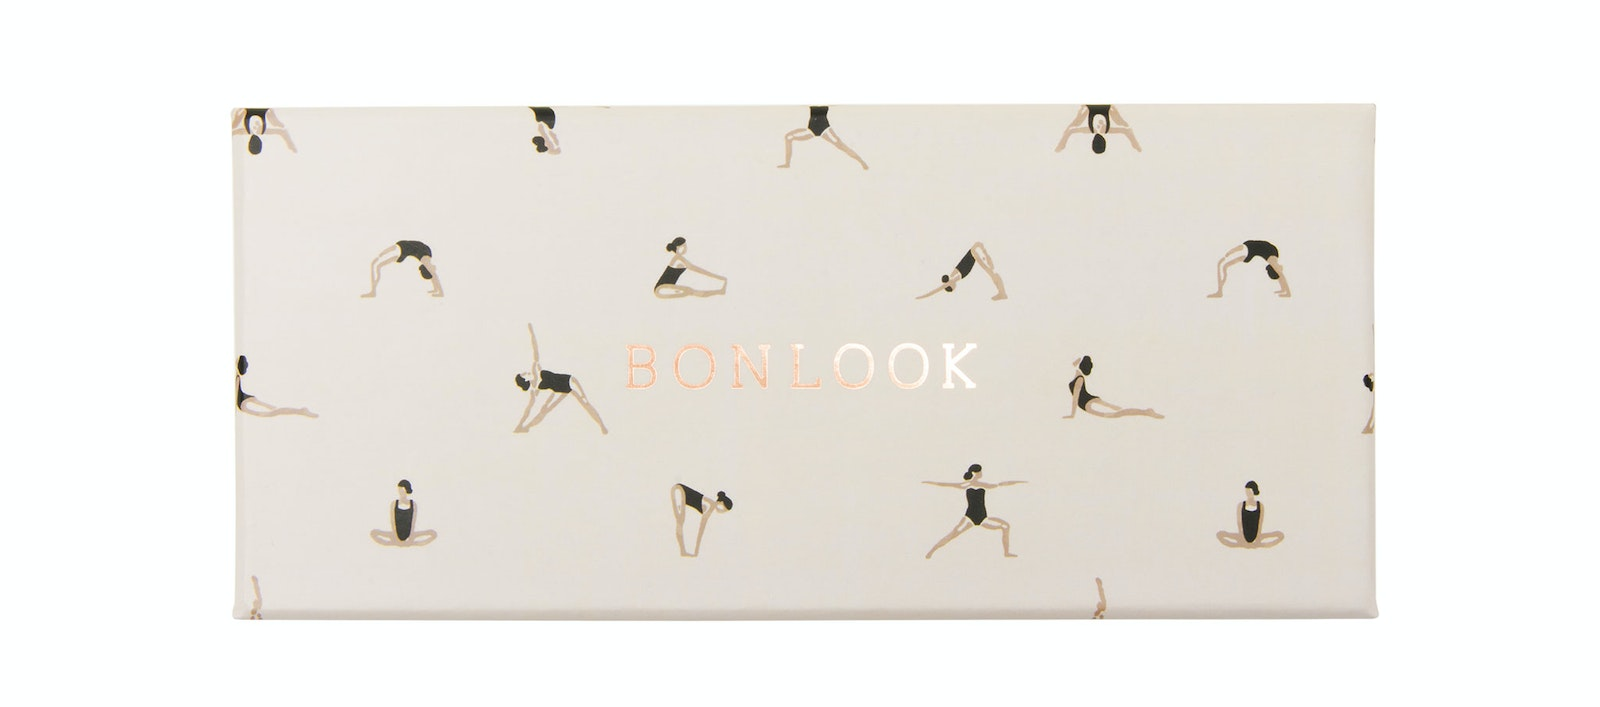 Affordable Fashion Glasses Accessory Men Women Classic Bonlook Case Yoga Tilt